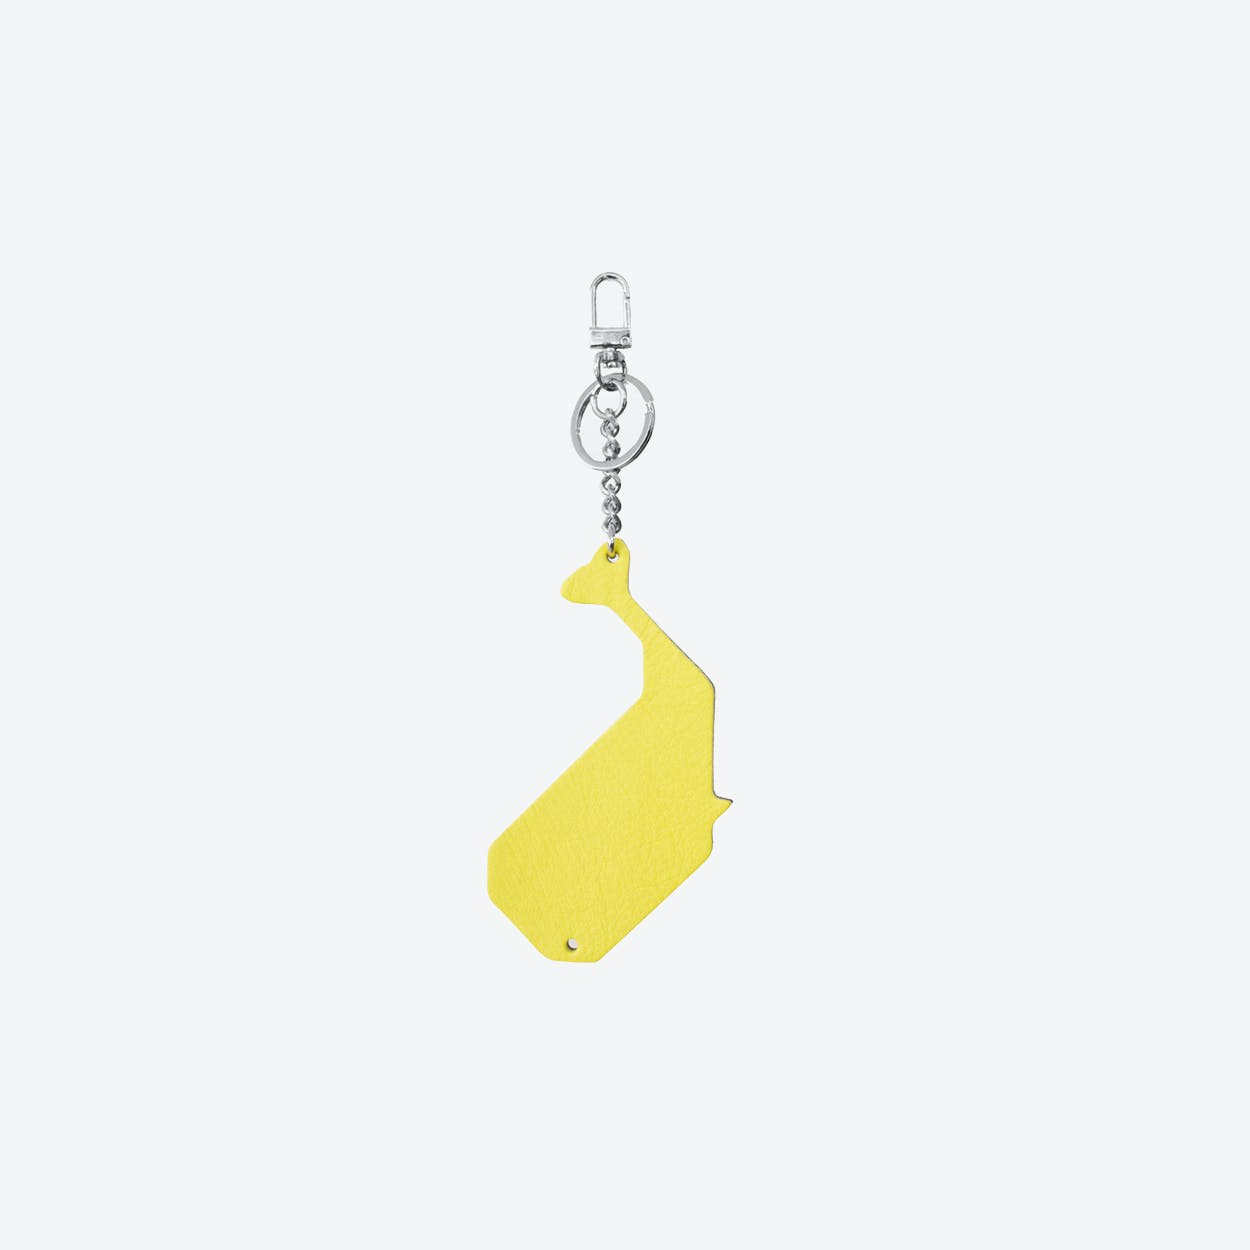 Whale PET Bag Charm in Yellow